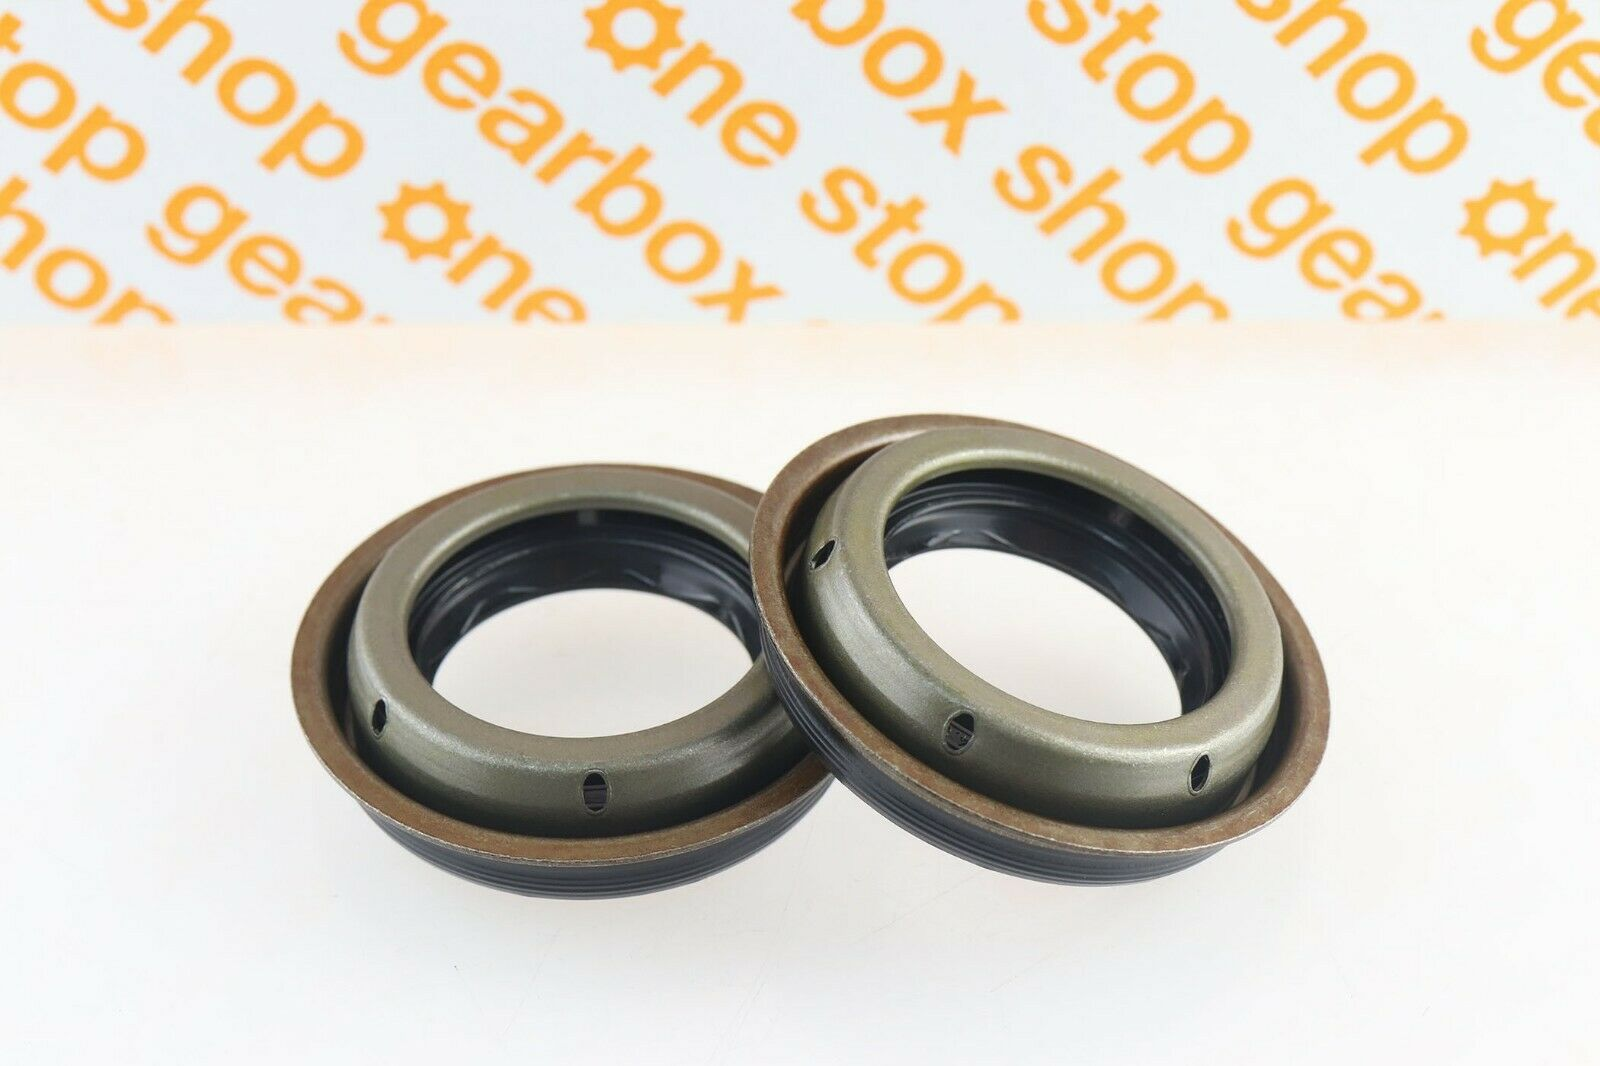 Details about M32 / M20 GEARBOX DIFFERENTIAL OIL SEAL PAIR BROWN SEAL  GENUINE EO